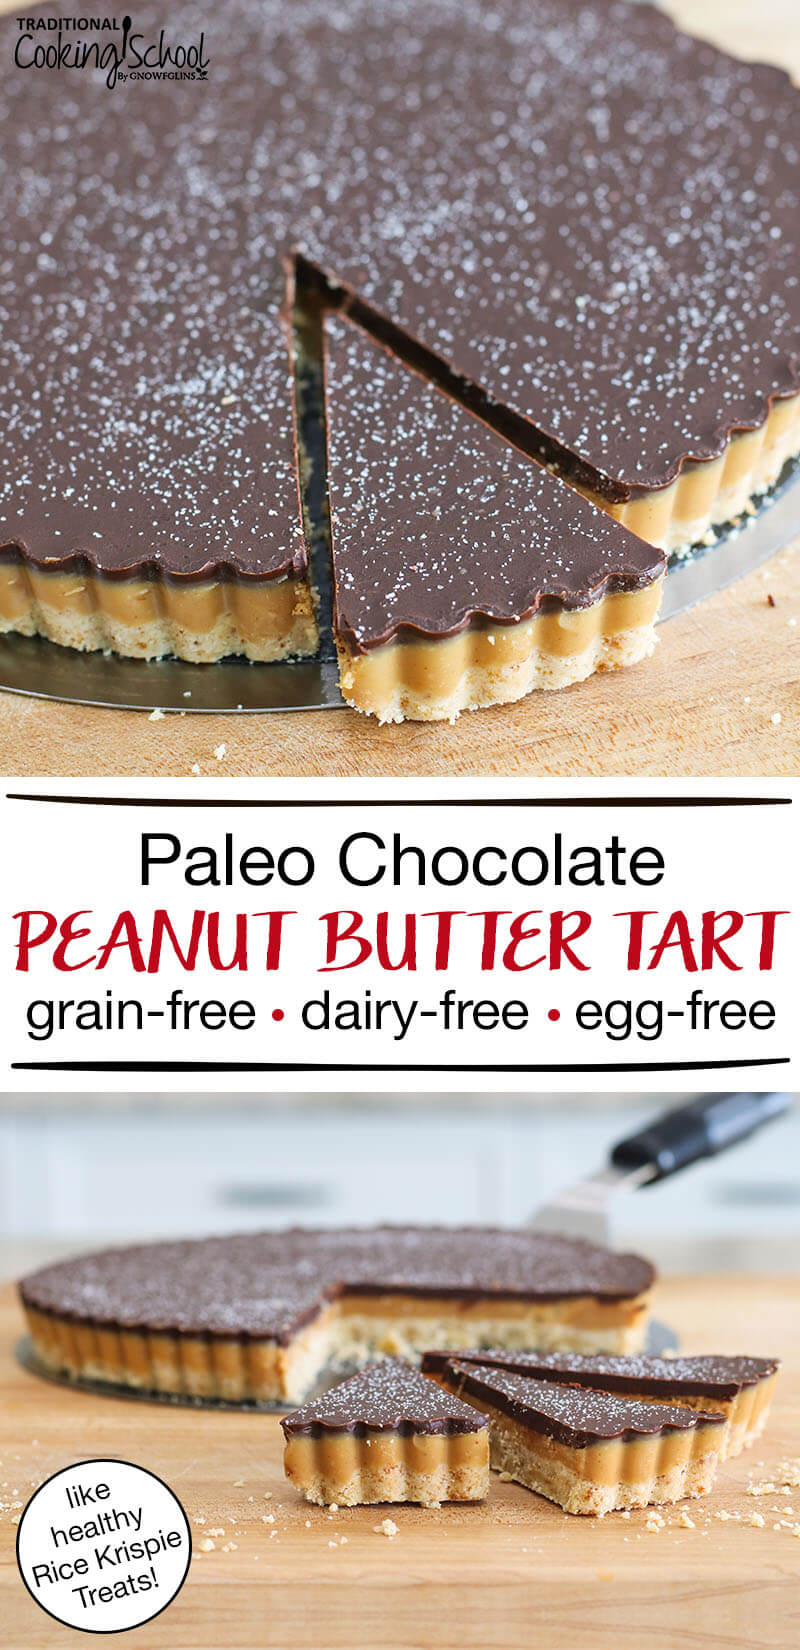 "photo collage of beautiful chocolate peanut butter tart with wedges cut out of it and text overlay: ""Paleo Chocolate Peanut Butter Tart like healthy Rice Krispie Treats! (grain-free, dairy-free, egg-free)"""